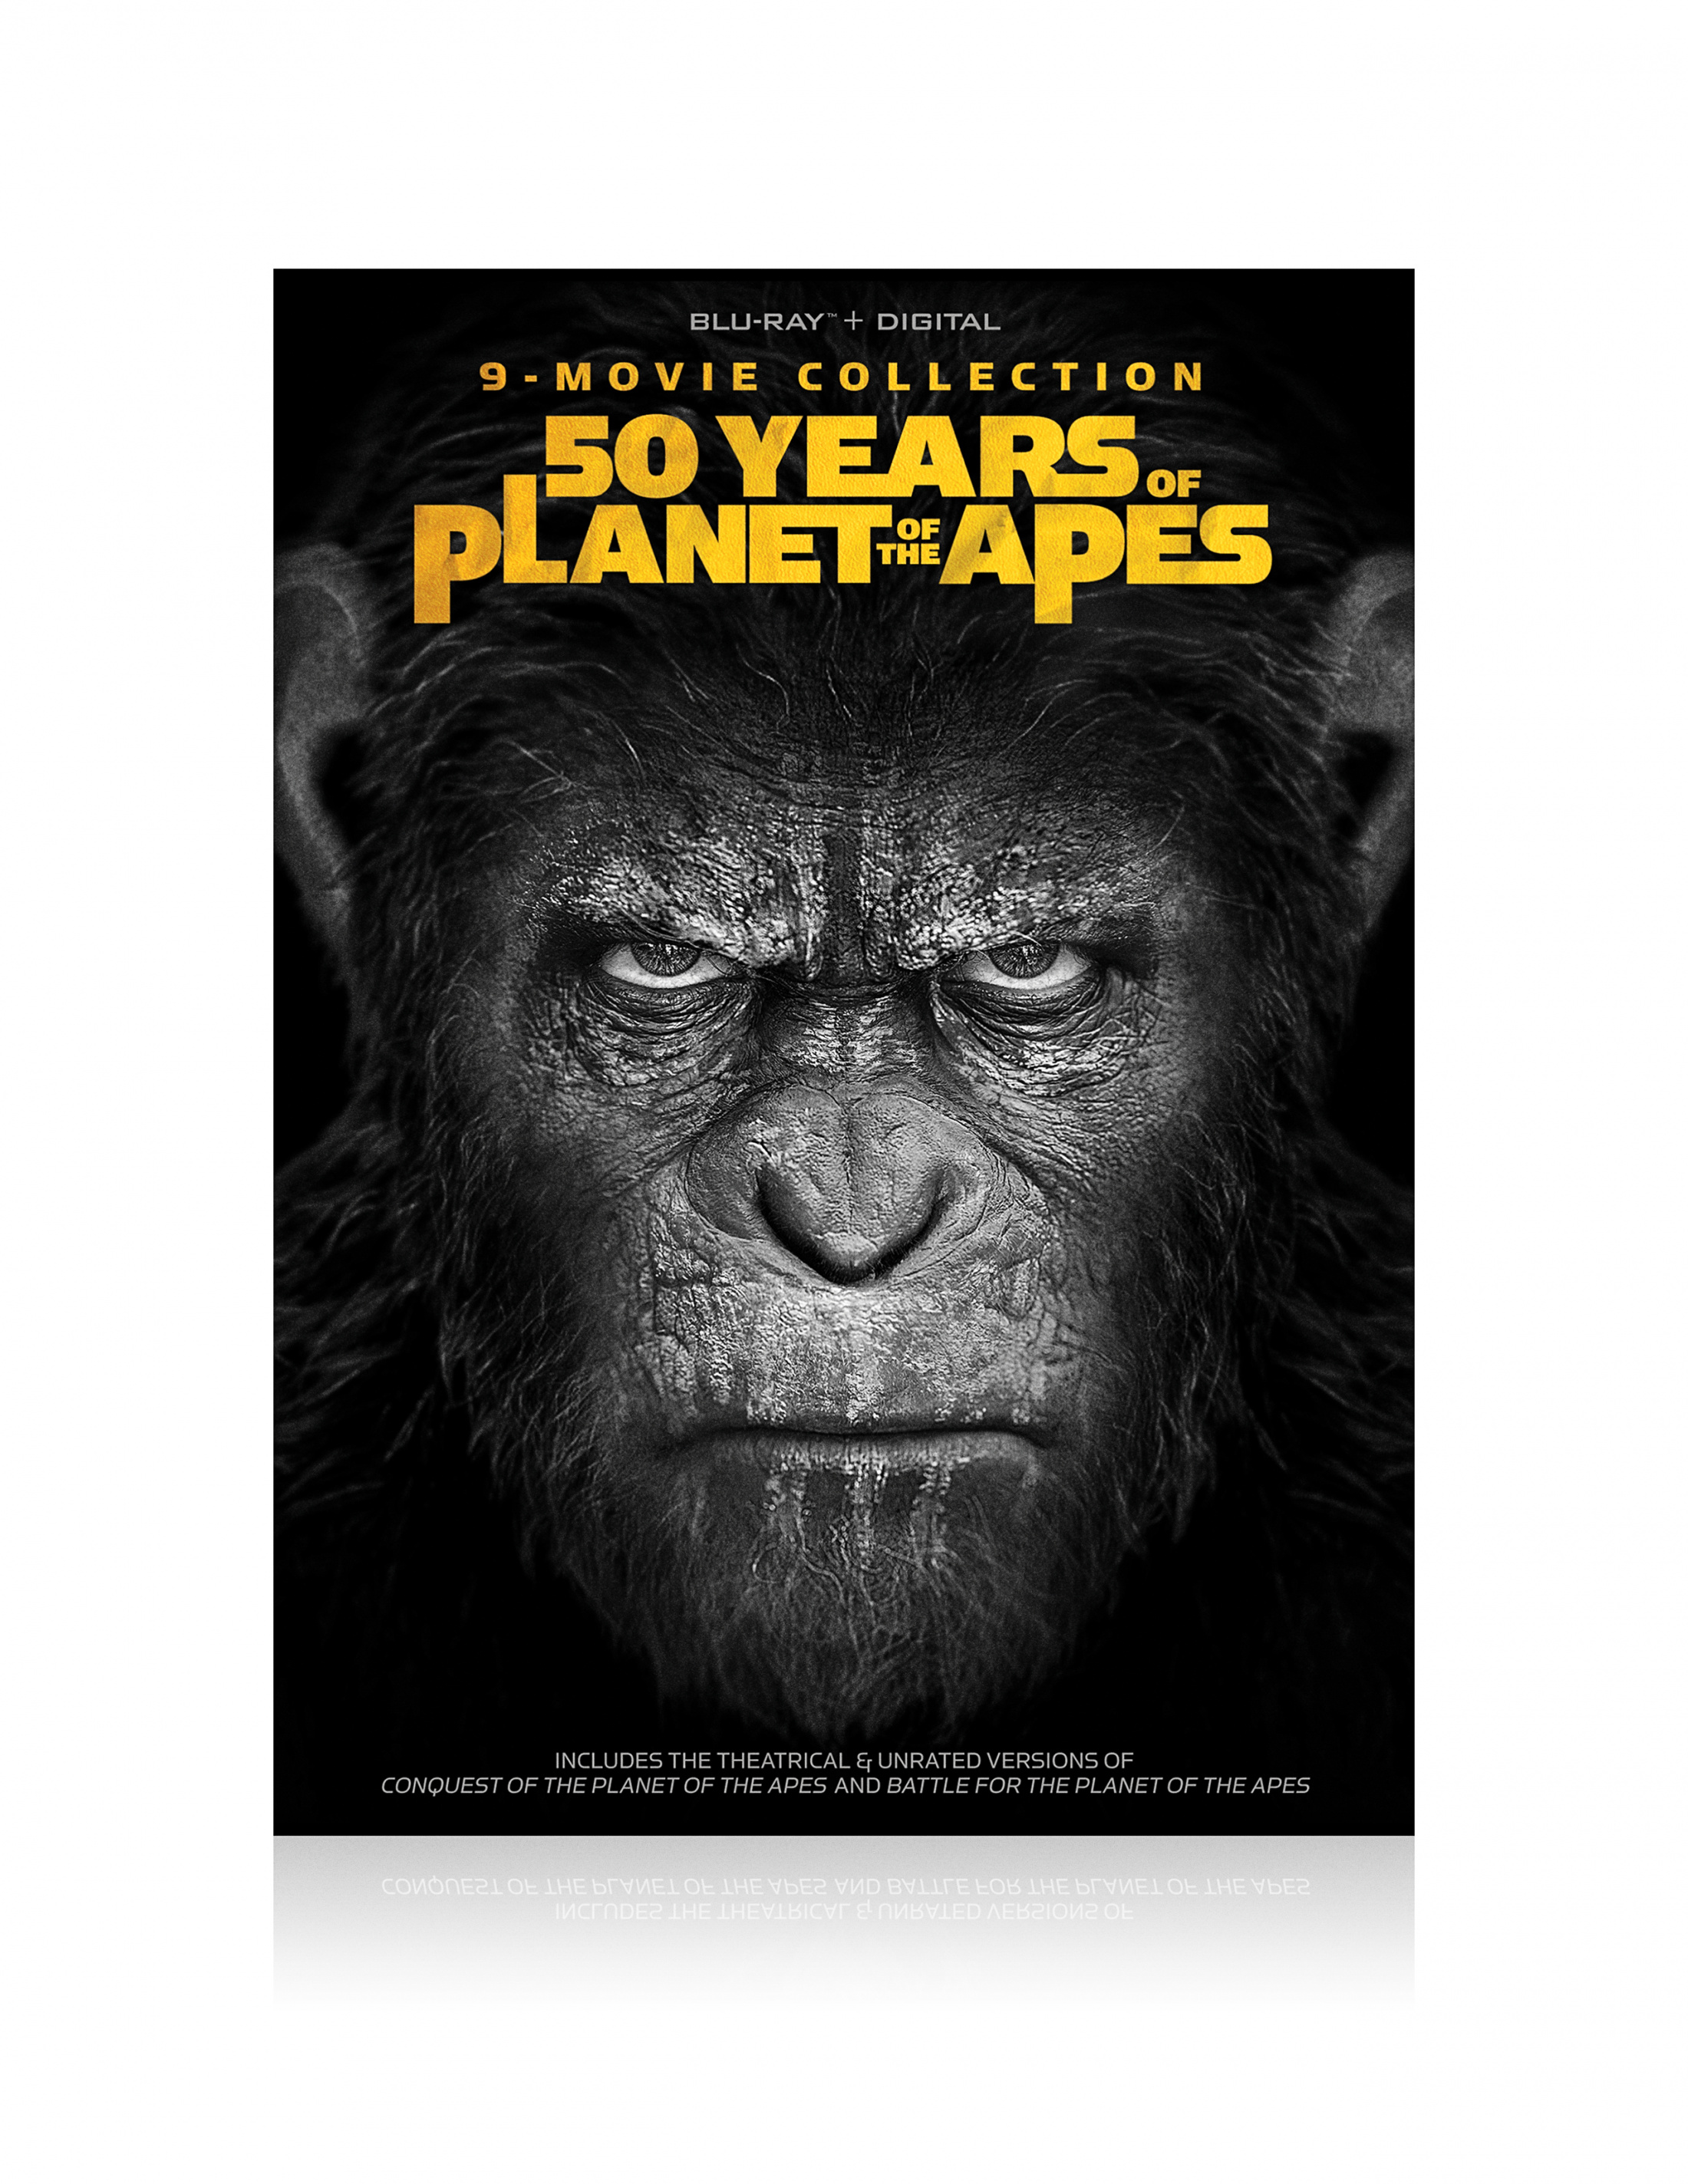 Thumbnail for Planet of the Apes 50th Anniversary Collection